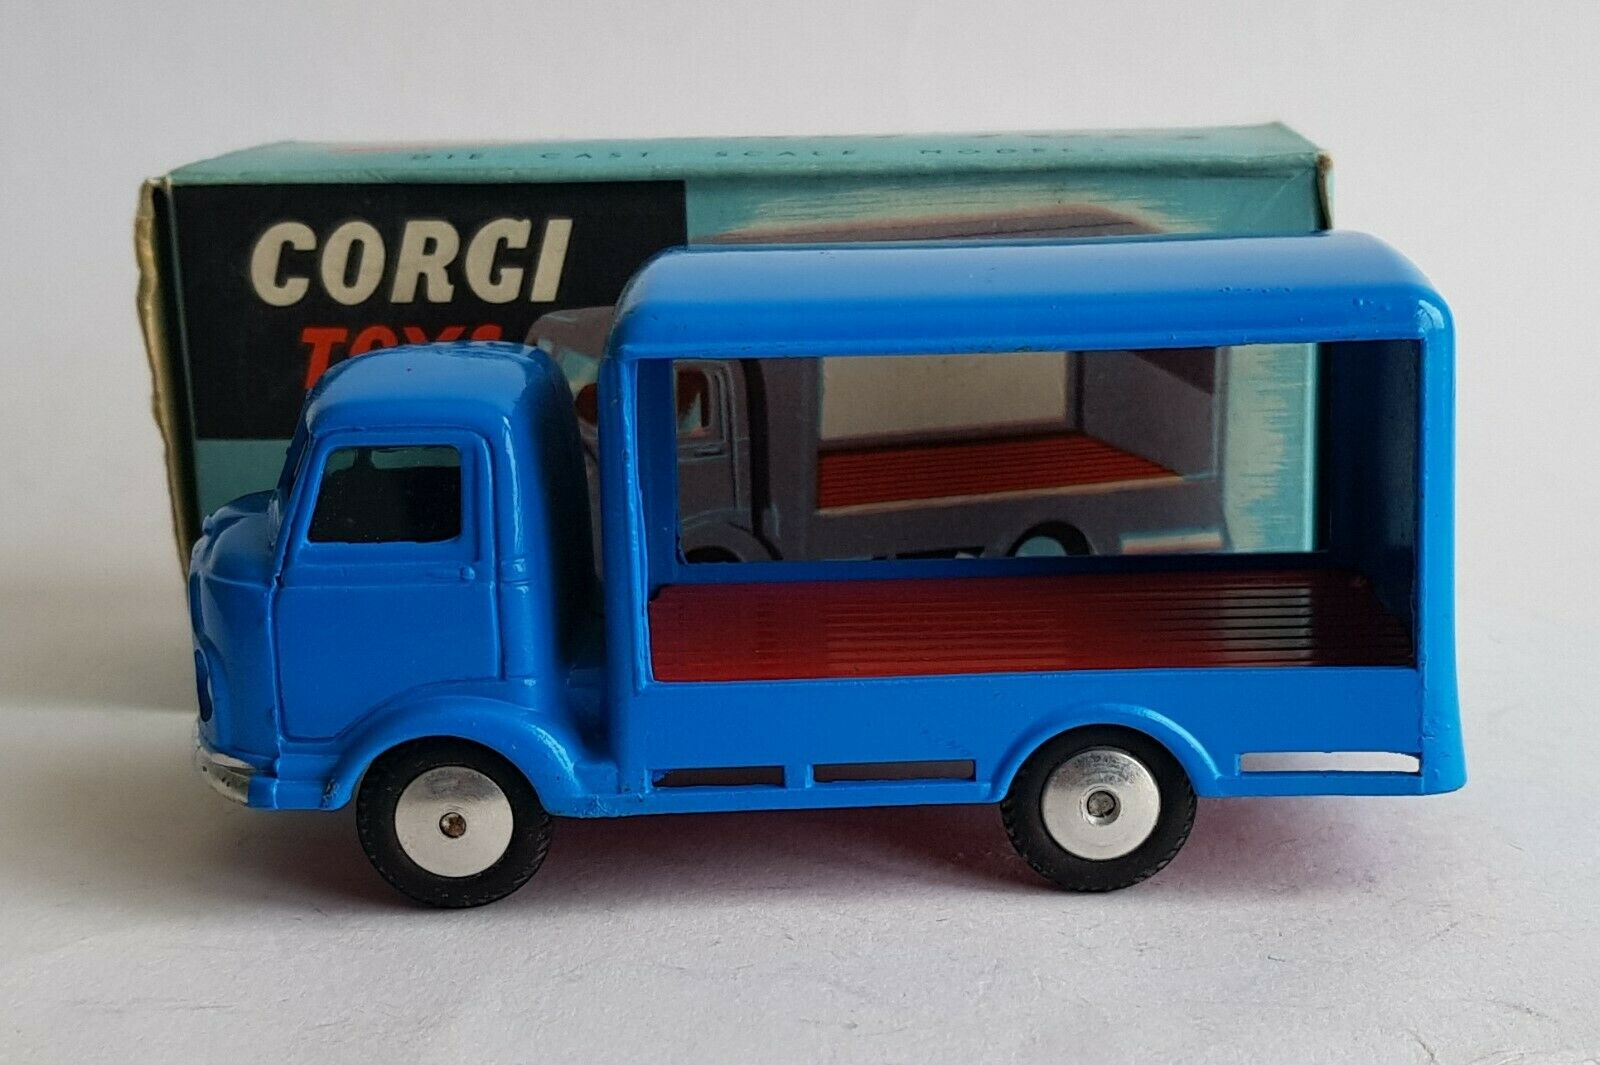 Corgi Toys No. 455, Karrier 'Bantam' Two Tonner, - Very Near Mint Condition.